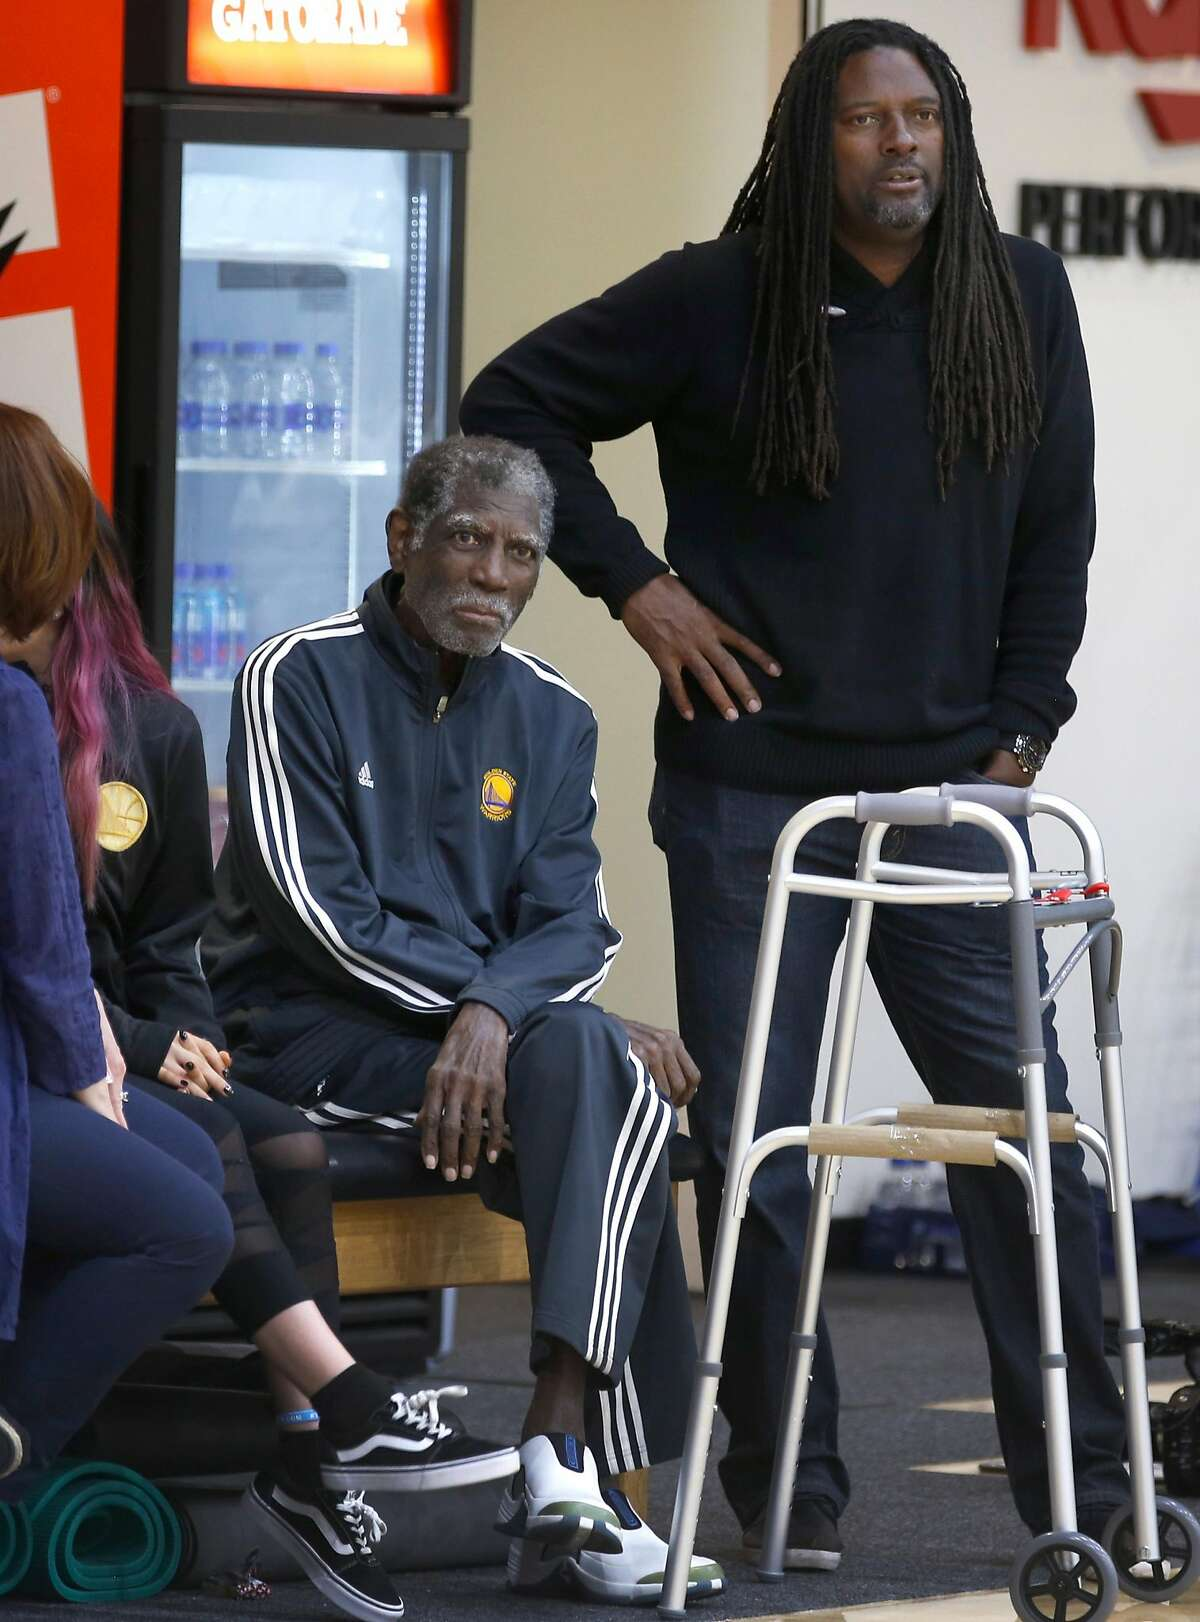 Al Attles and son Alvin III are the faces of the Attles Center for Excellence, a nonprofit program in Oakland.